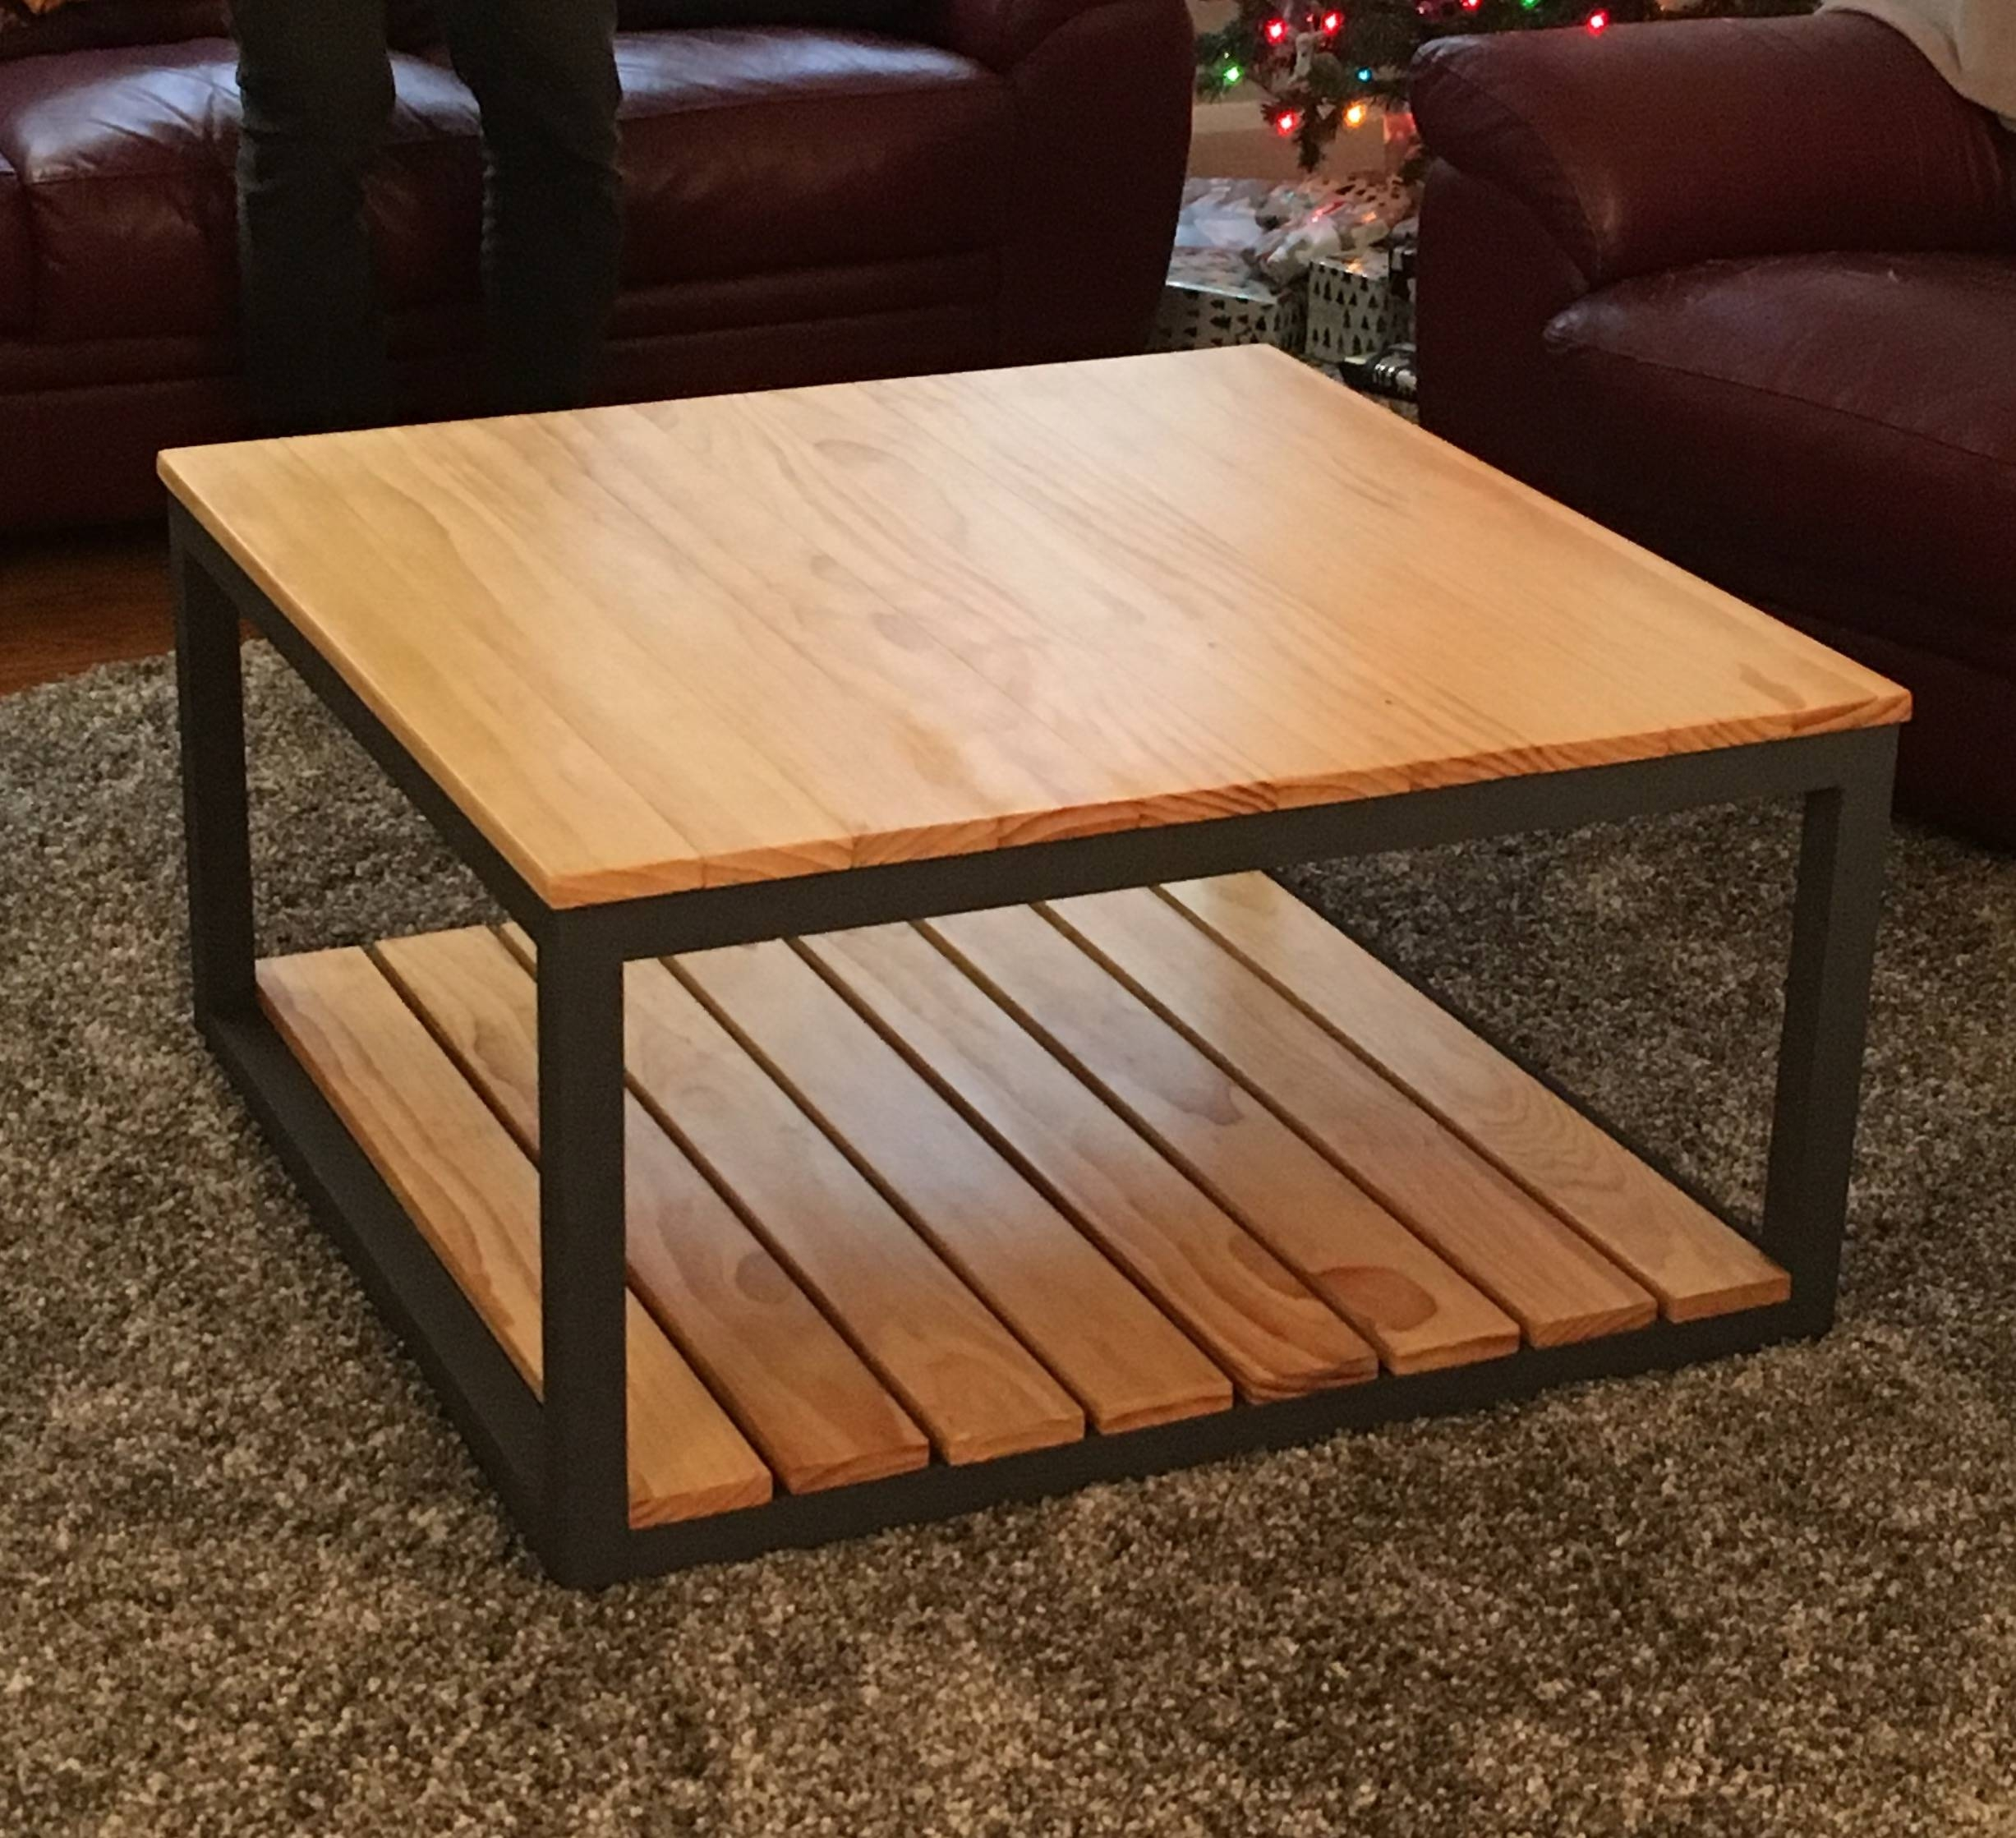 Ana White | Modified Industrial Style Coffee Table W/ Bottom Shelf Regarding Industrial Style Coffee Tables (View 9 of 15)